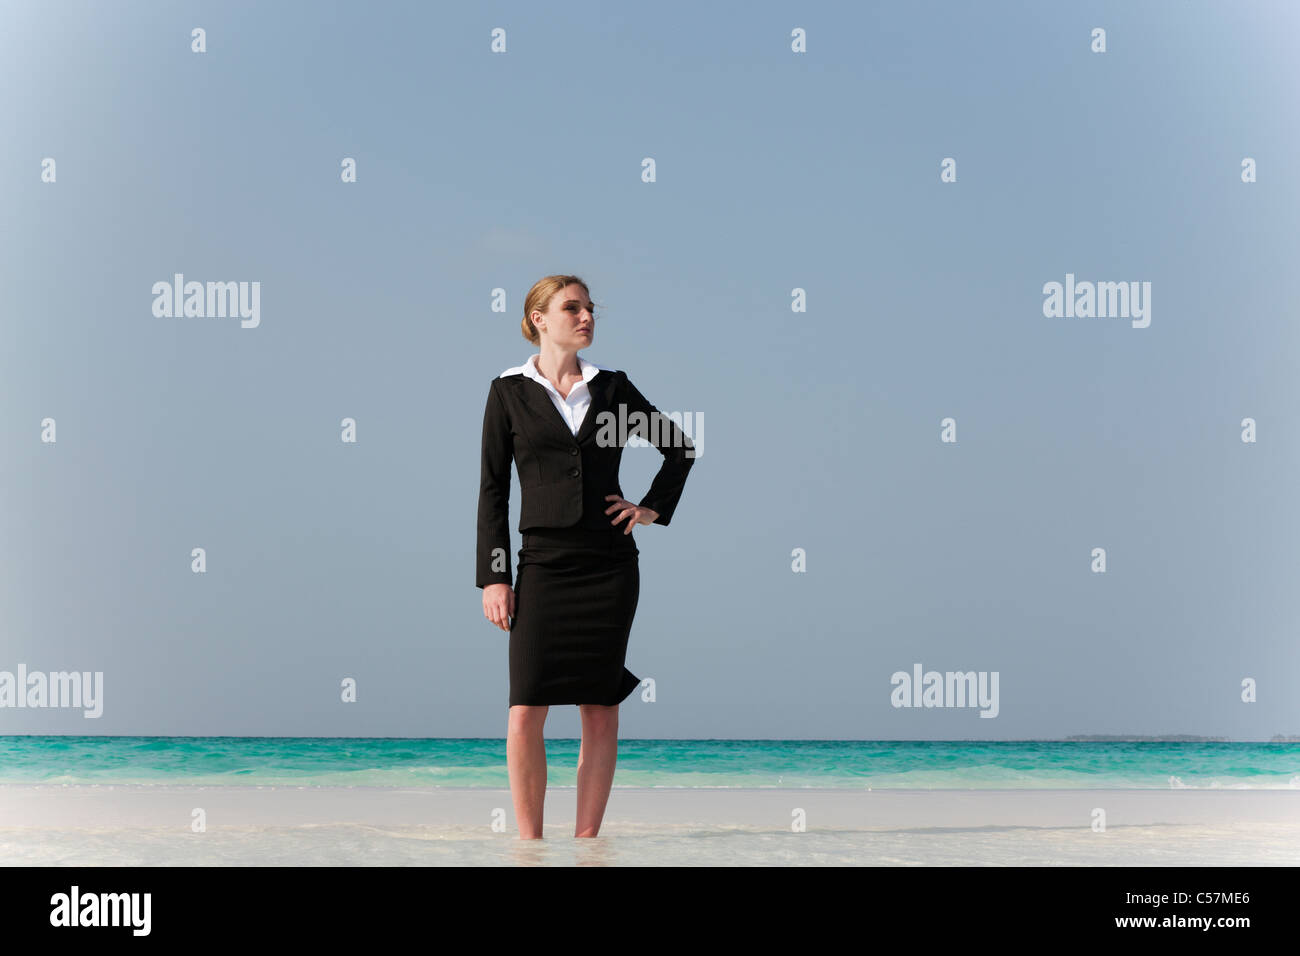 Businesswoman standing on tropical beach Photo Stock